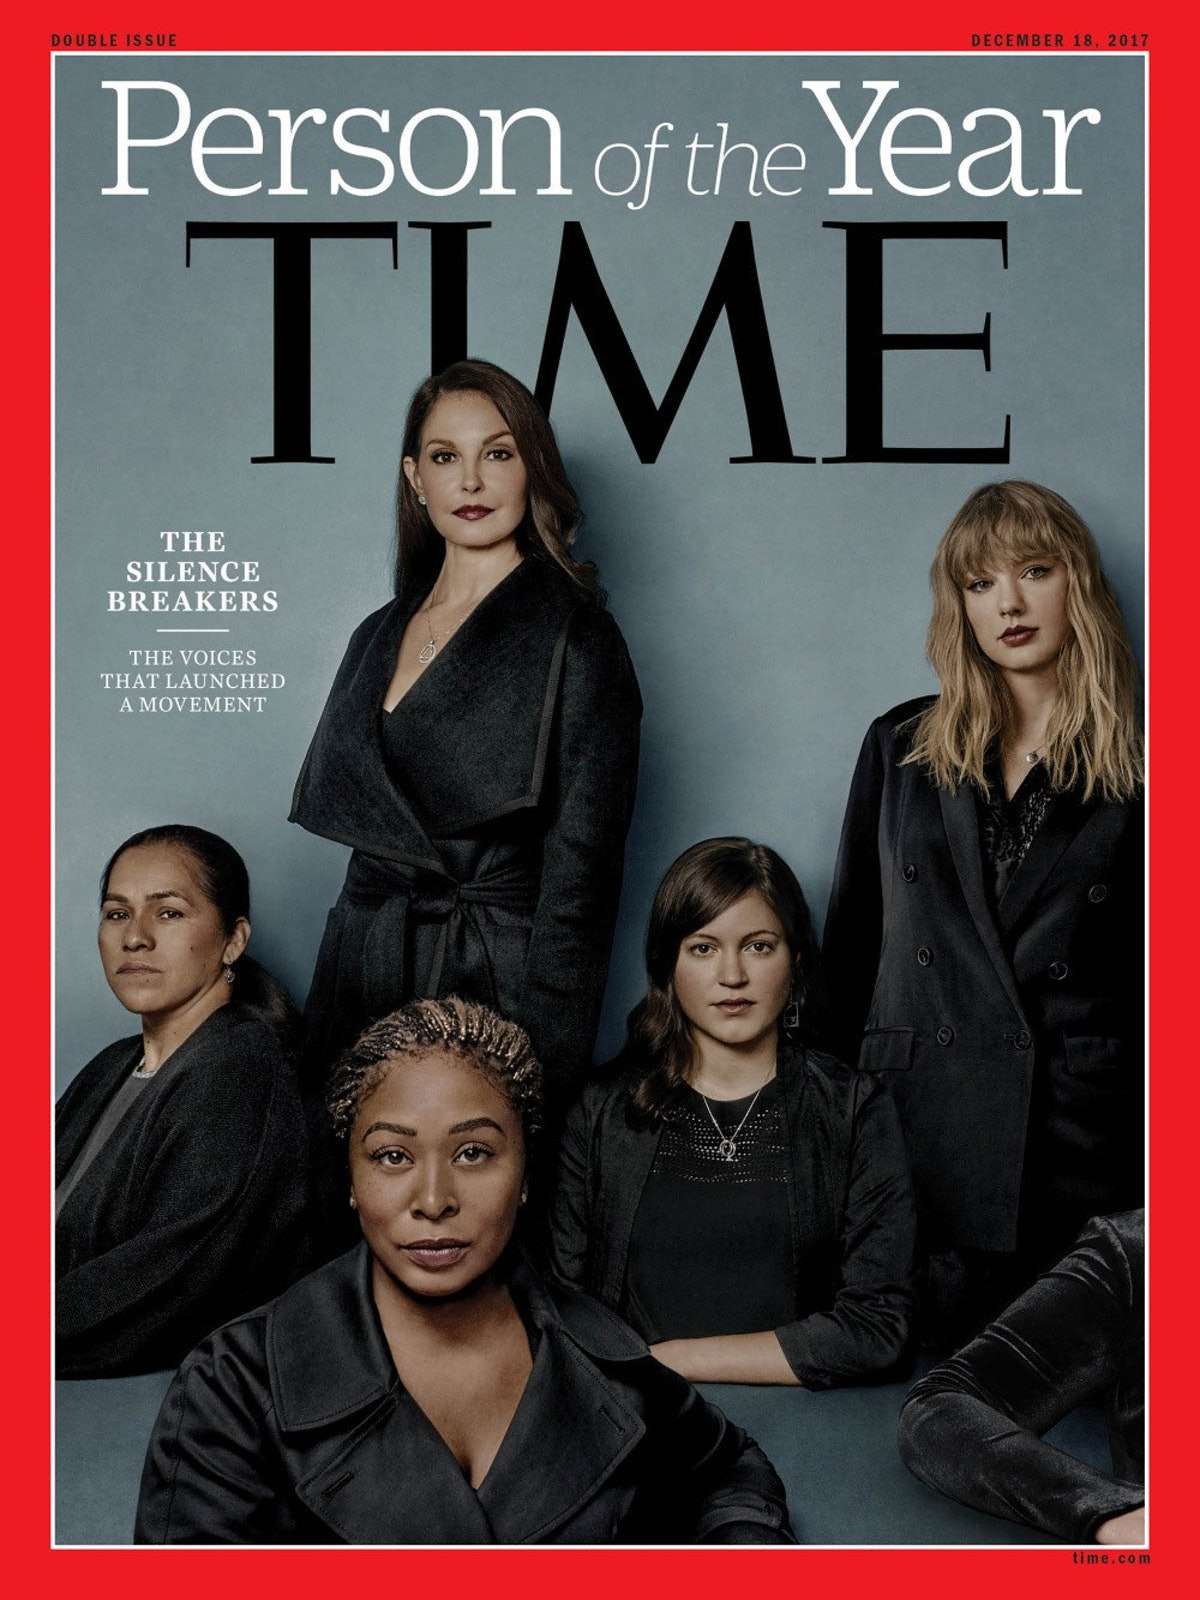 Time's 2017 Person of the Year revealed as #MeToo movement